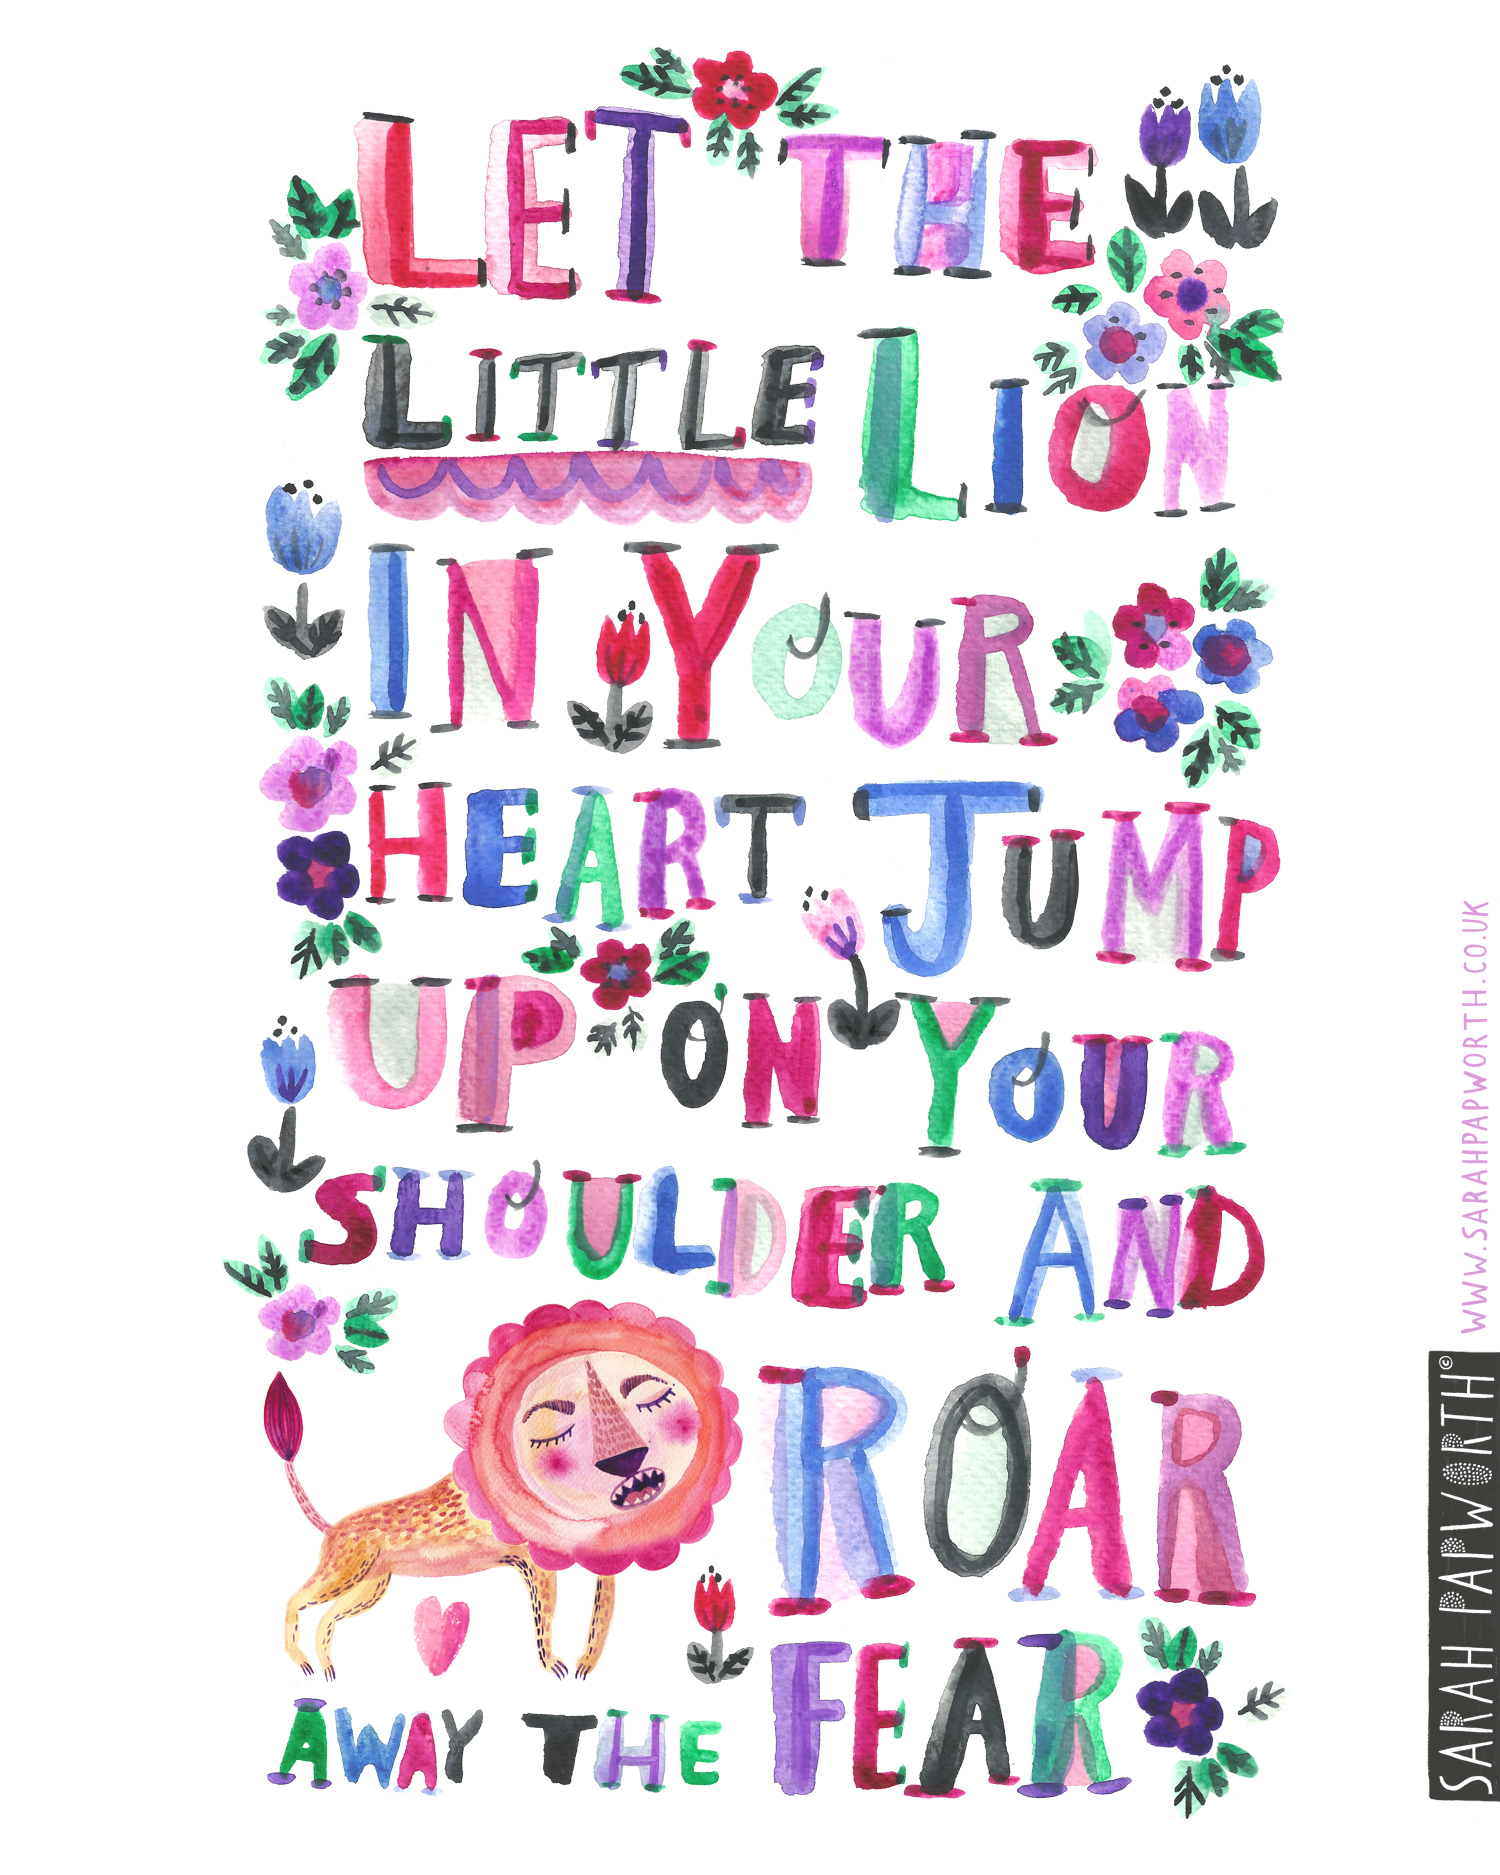 bravery quote by sarah papworth lion kids book illustration.jpg